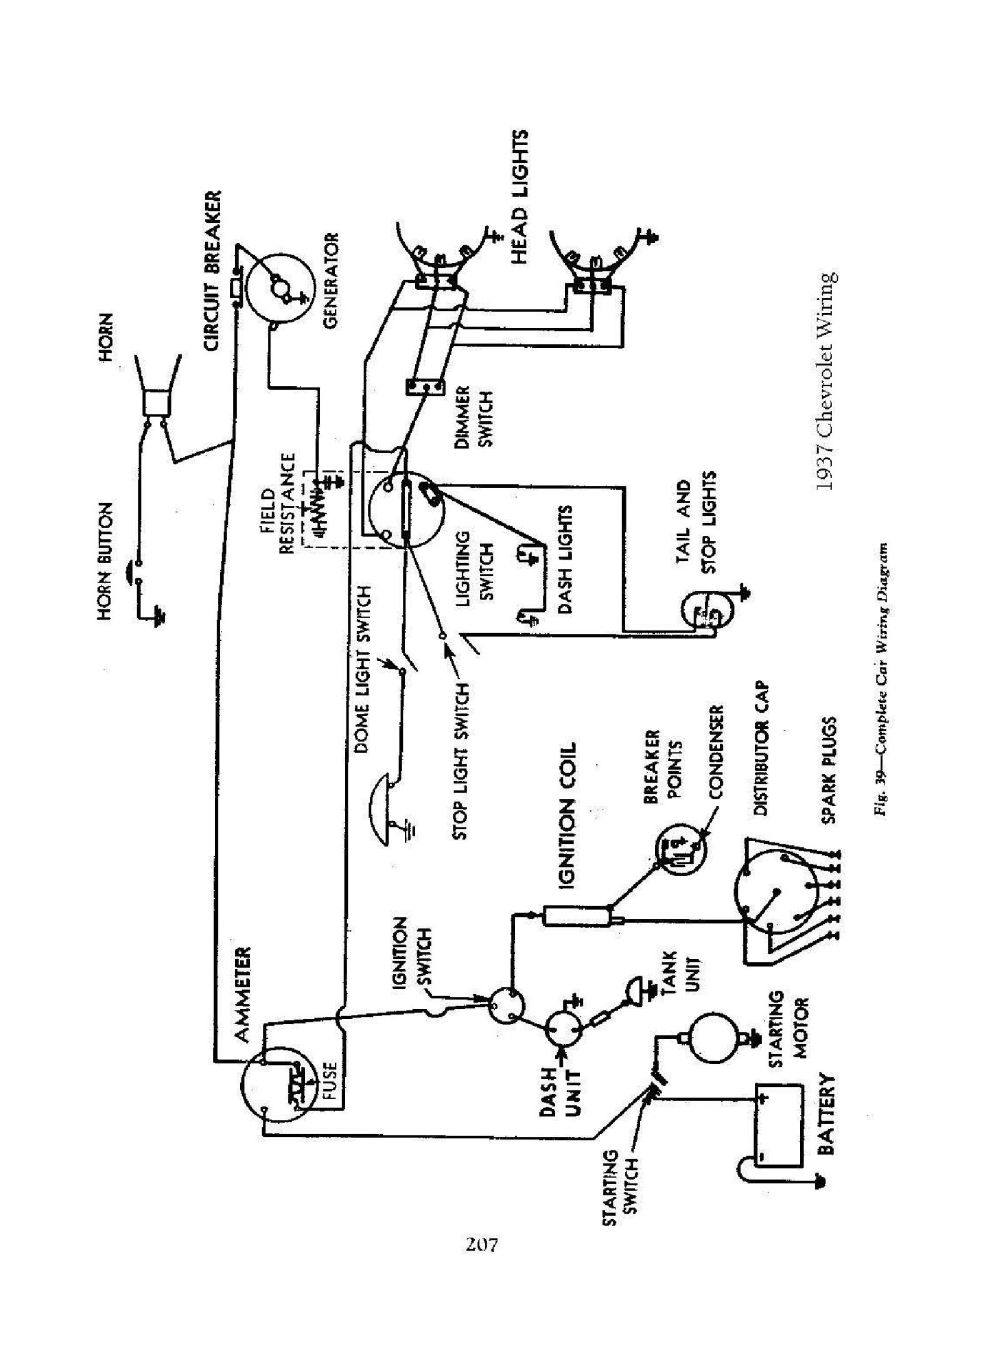 medium resolution of car circuit breaker wiring diagram wiring library 1937 passenger car wiring chevy wiring diagrams